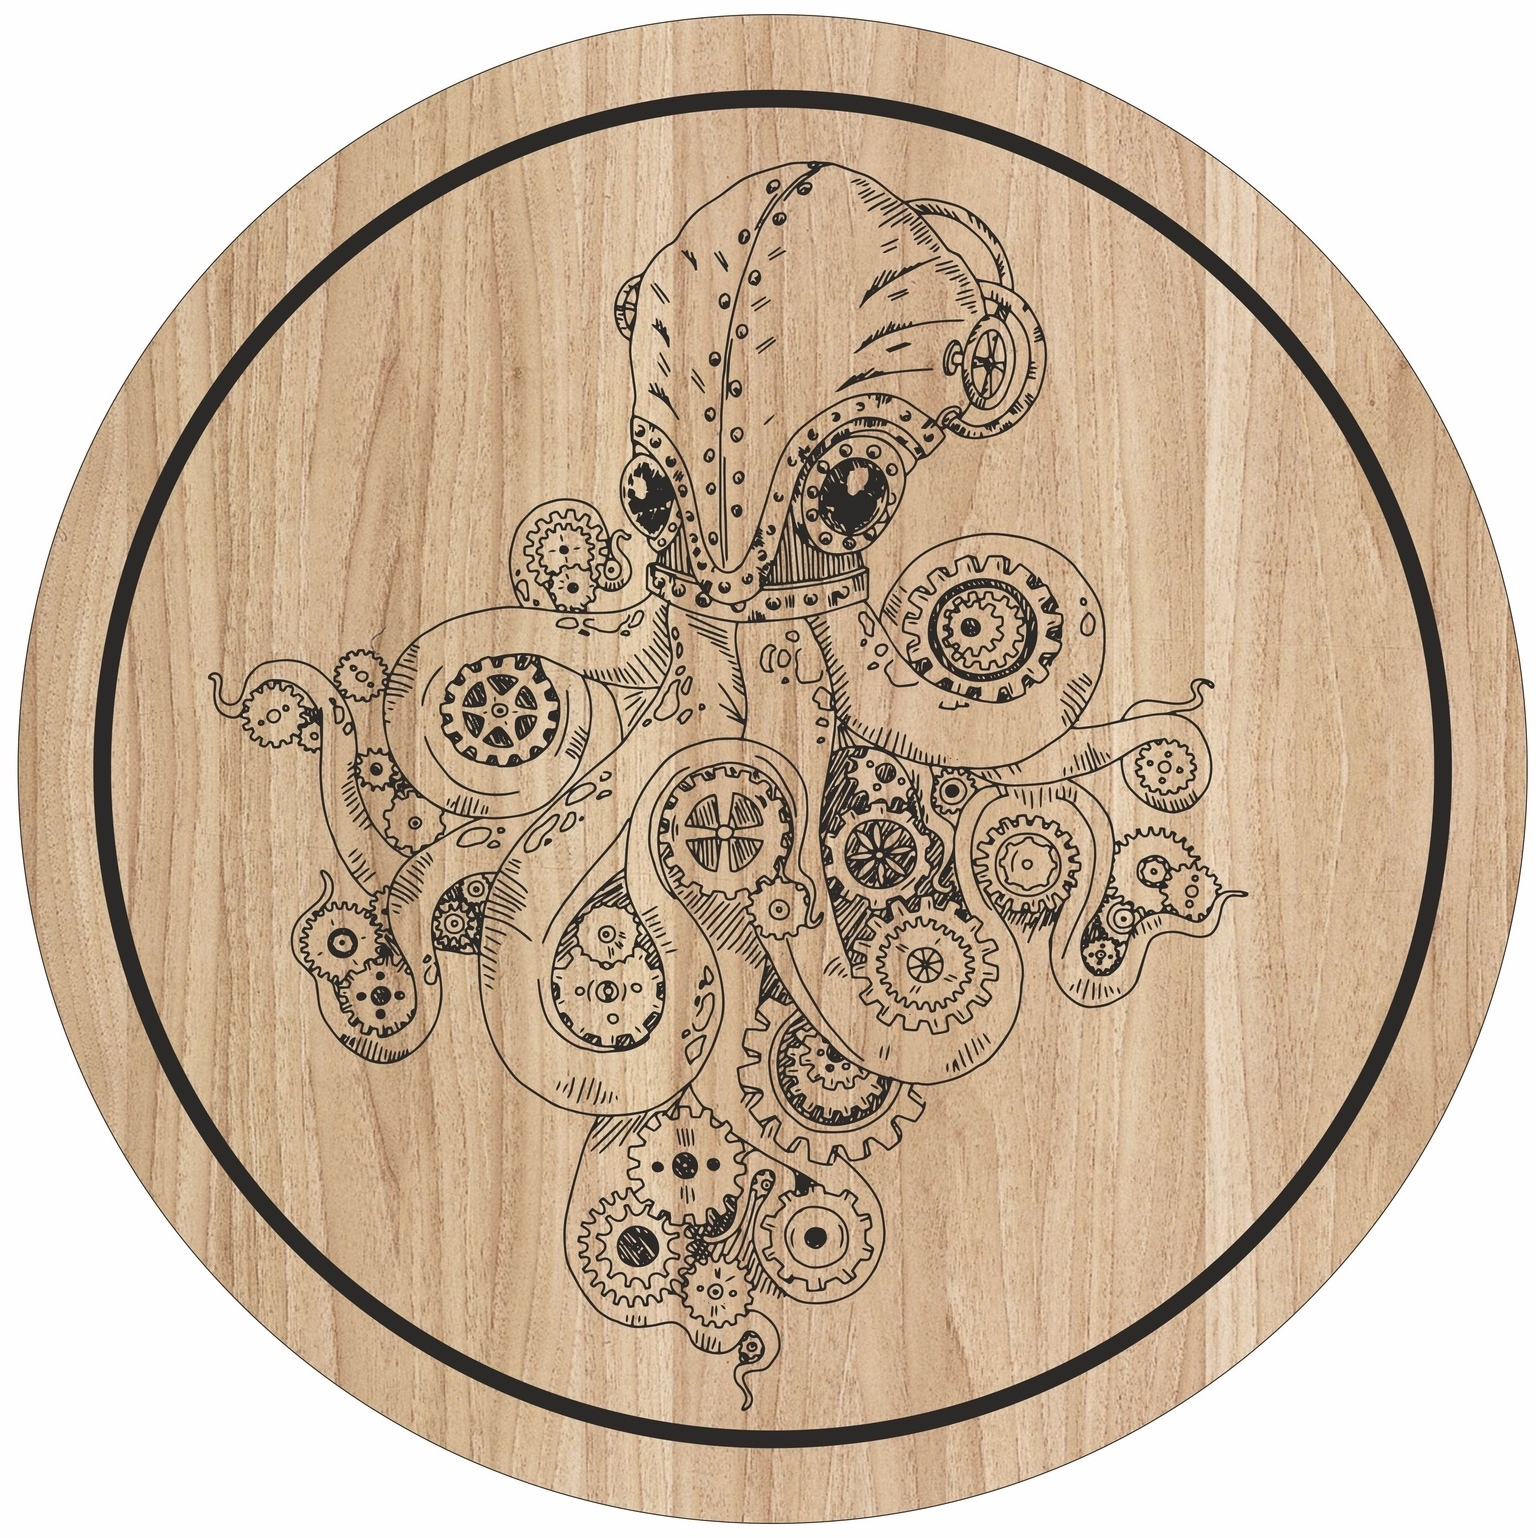 Laser Engraving Octopus Art For Cutting Board Free Vector